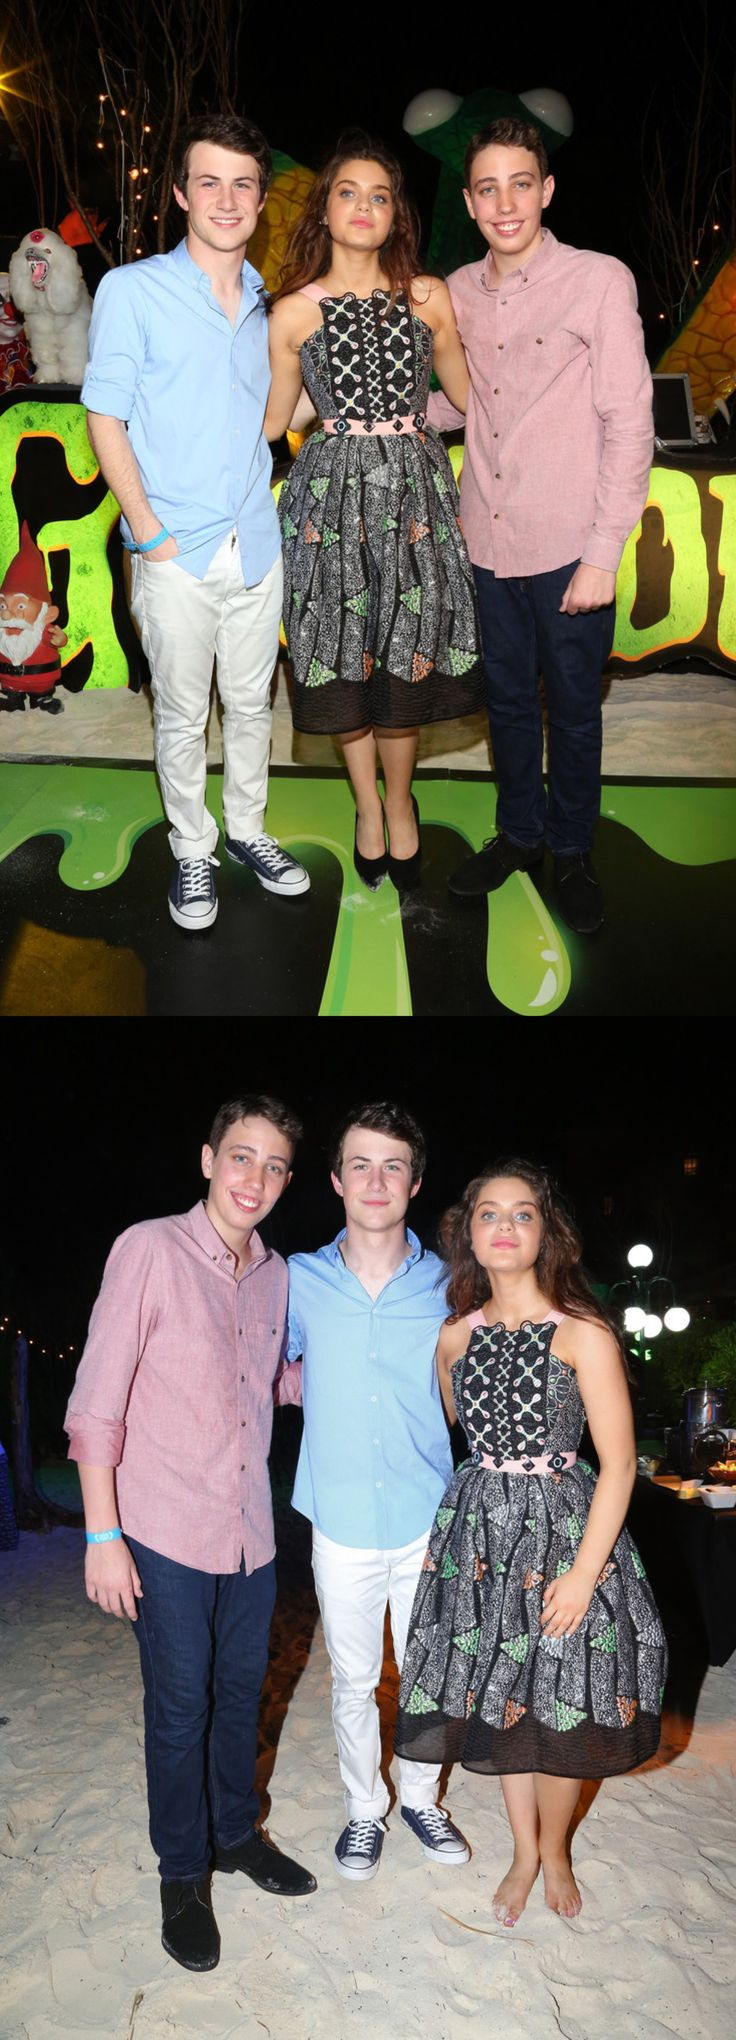 """Dylan Minnette, Odeya Rush and Ryan Lee at the """"Goosebumps"""" party during Summer Of Sony Pictures Ent at The Ritz-Carlton Cancun, Mexico on June 12, 2015"""